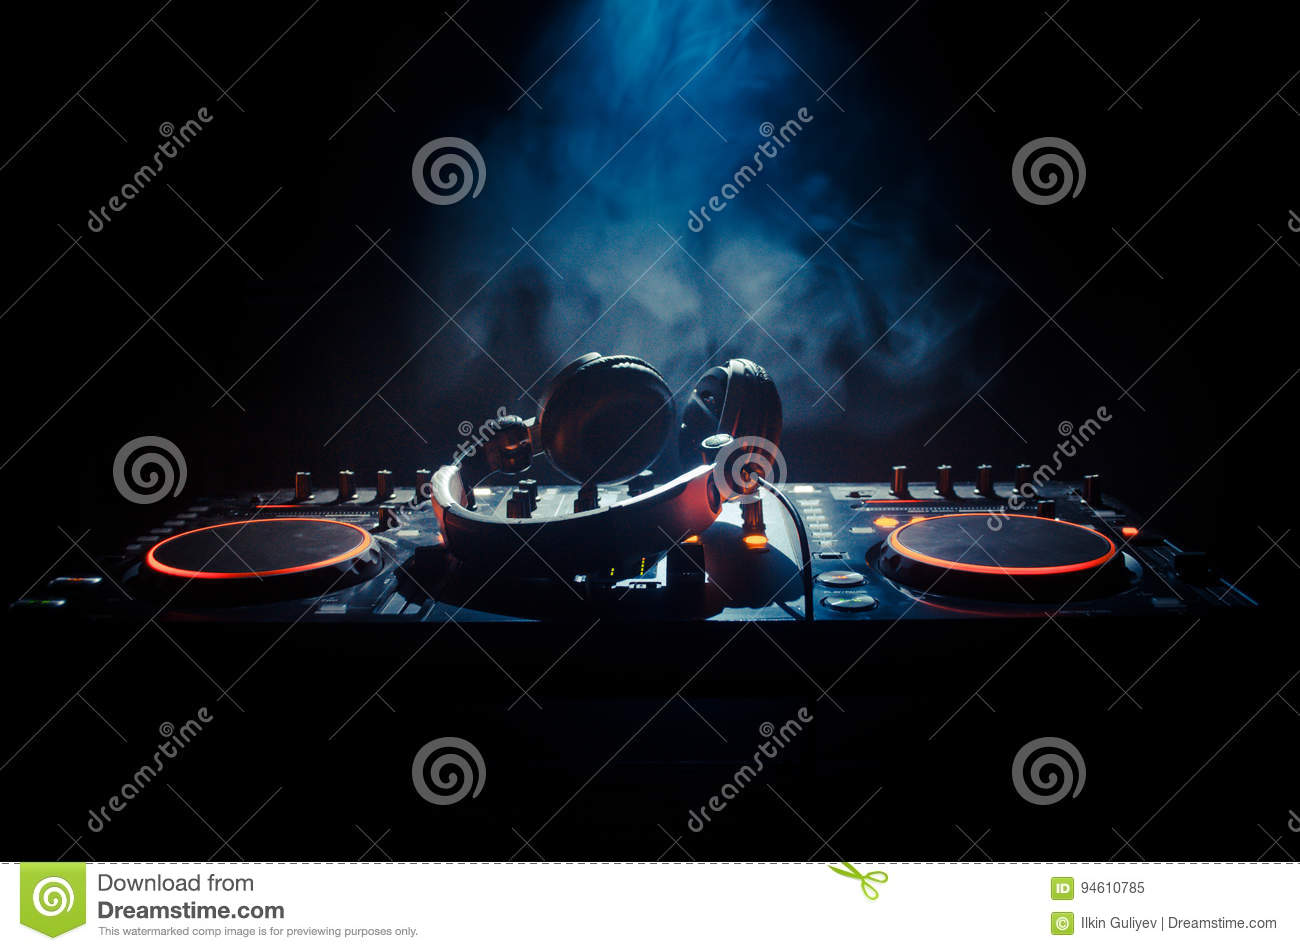 DJ Spinning, Mixing, and Scratching in a Night Club, Hands of dj tweak various track controls on dj s deck, strobe lights and fog